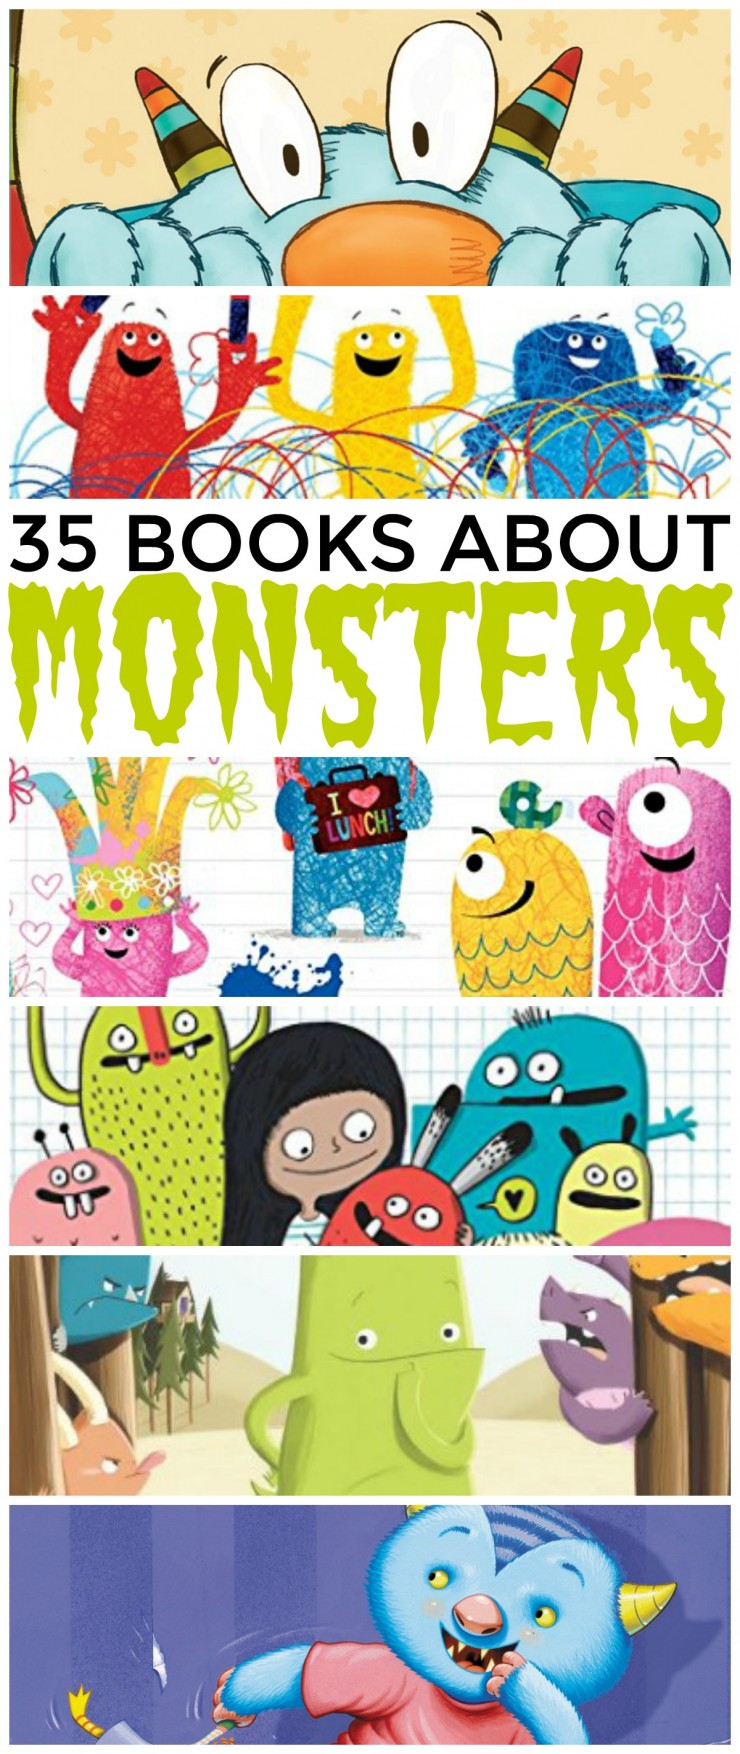 35 books about monsters for kid aged 3-6. Make Monsters fun, not scary, with these great monster books!